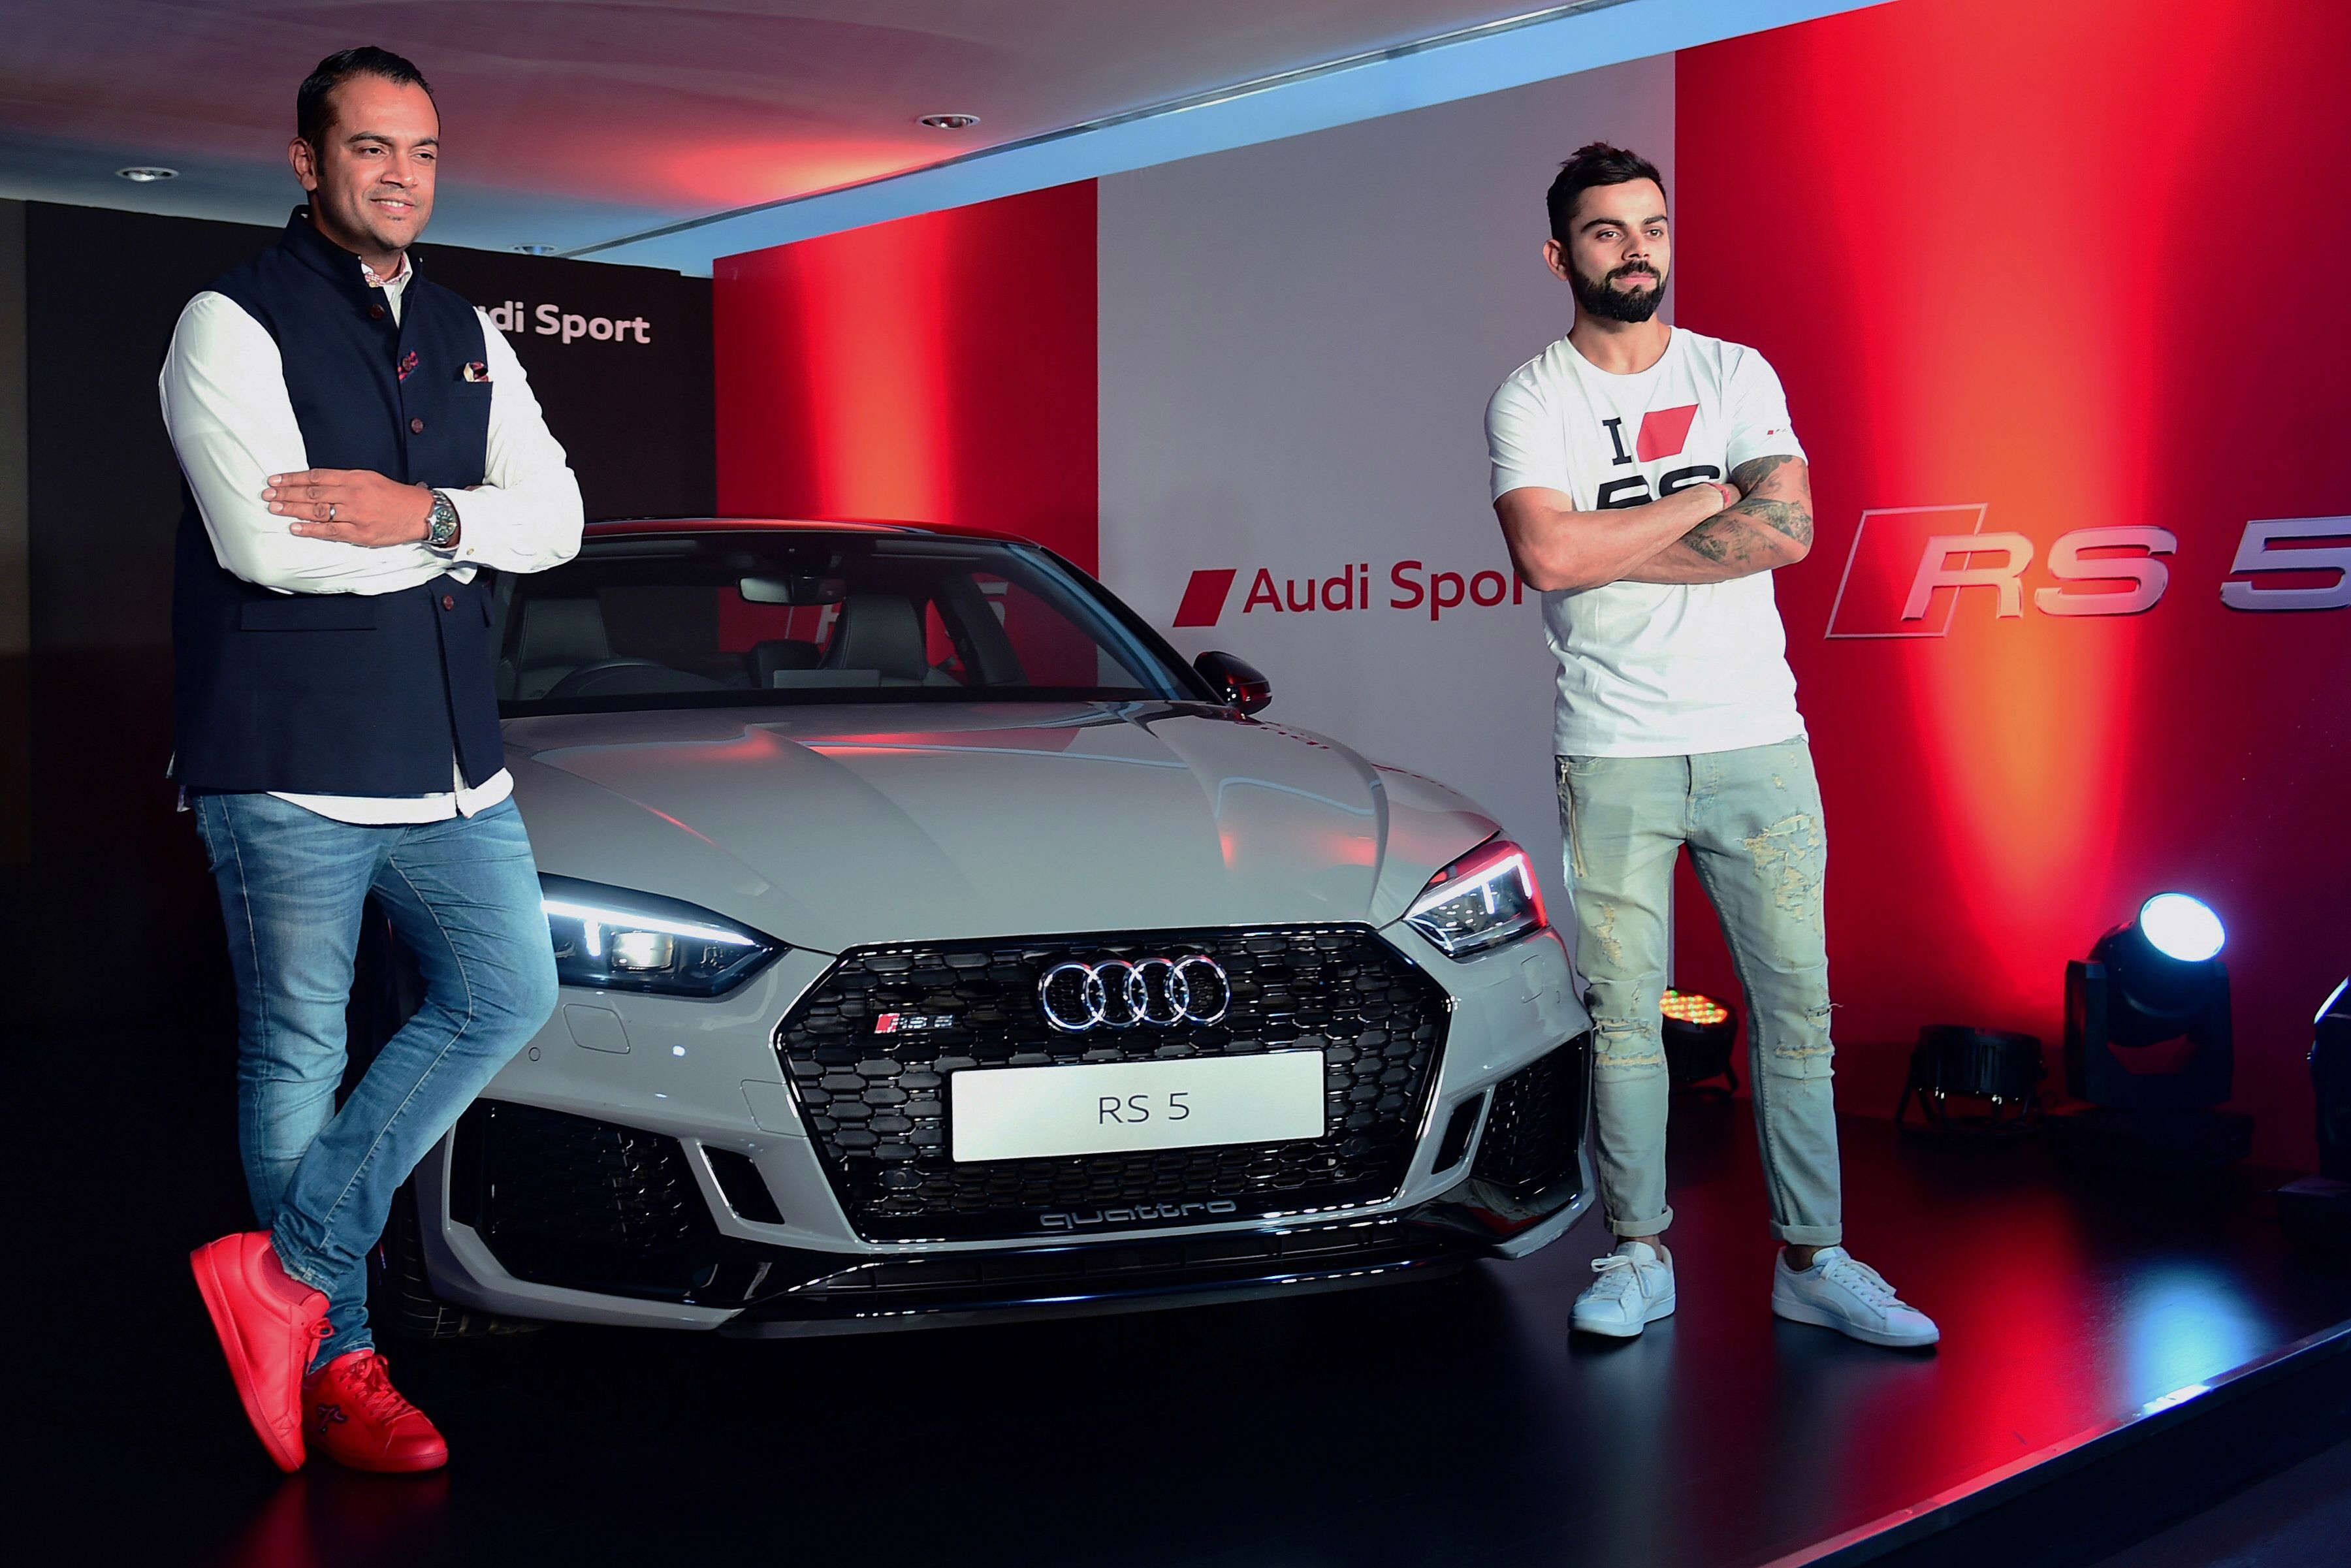 Slide 32 of 35: Indian cricket captain Virat Kohli (R) poses for a picture during a launch event for the Audi R5 coupe car. Virat recently added the mean machine to his garage.